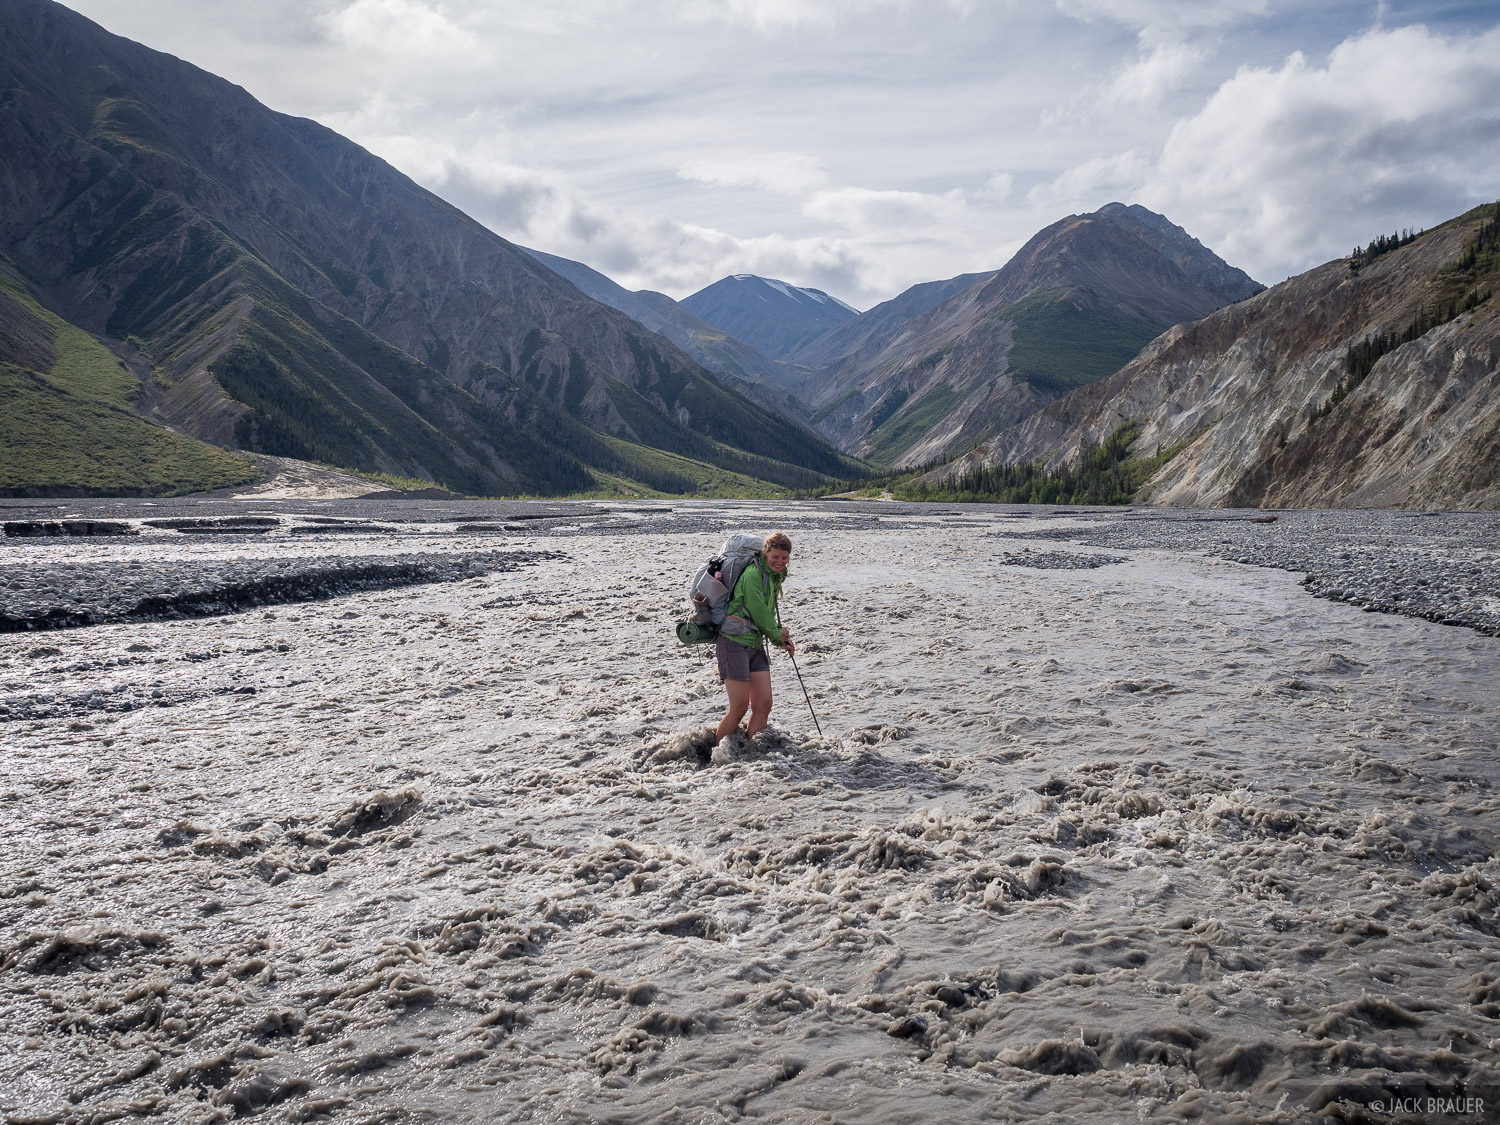 On this trek we had plenty of opportunities to hone our river crossing skills. Canada Creek in particular can test one's patience...